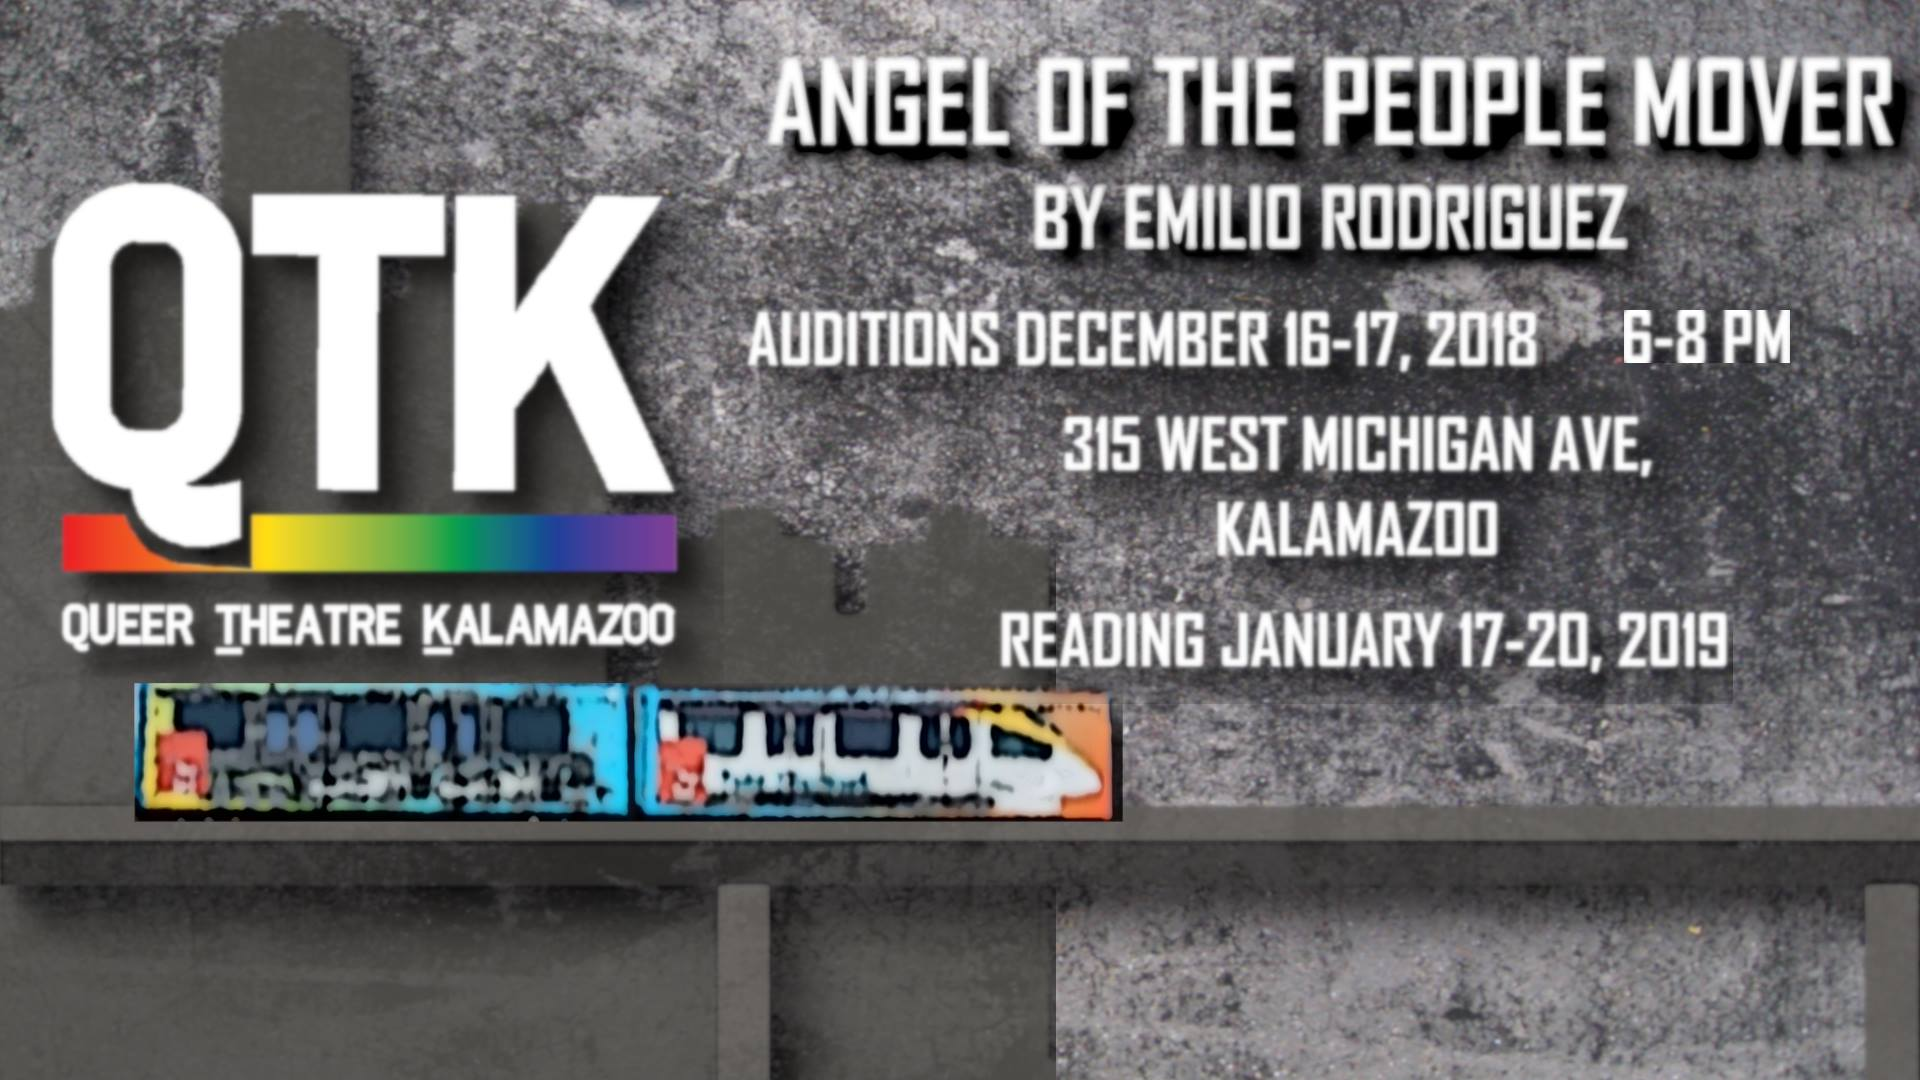 Angel of the People Mover Auditions presented by Queer Theatre